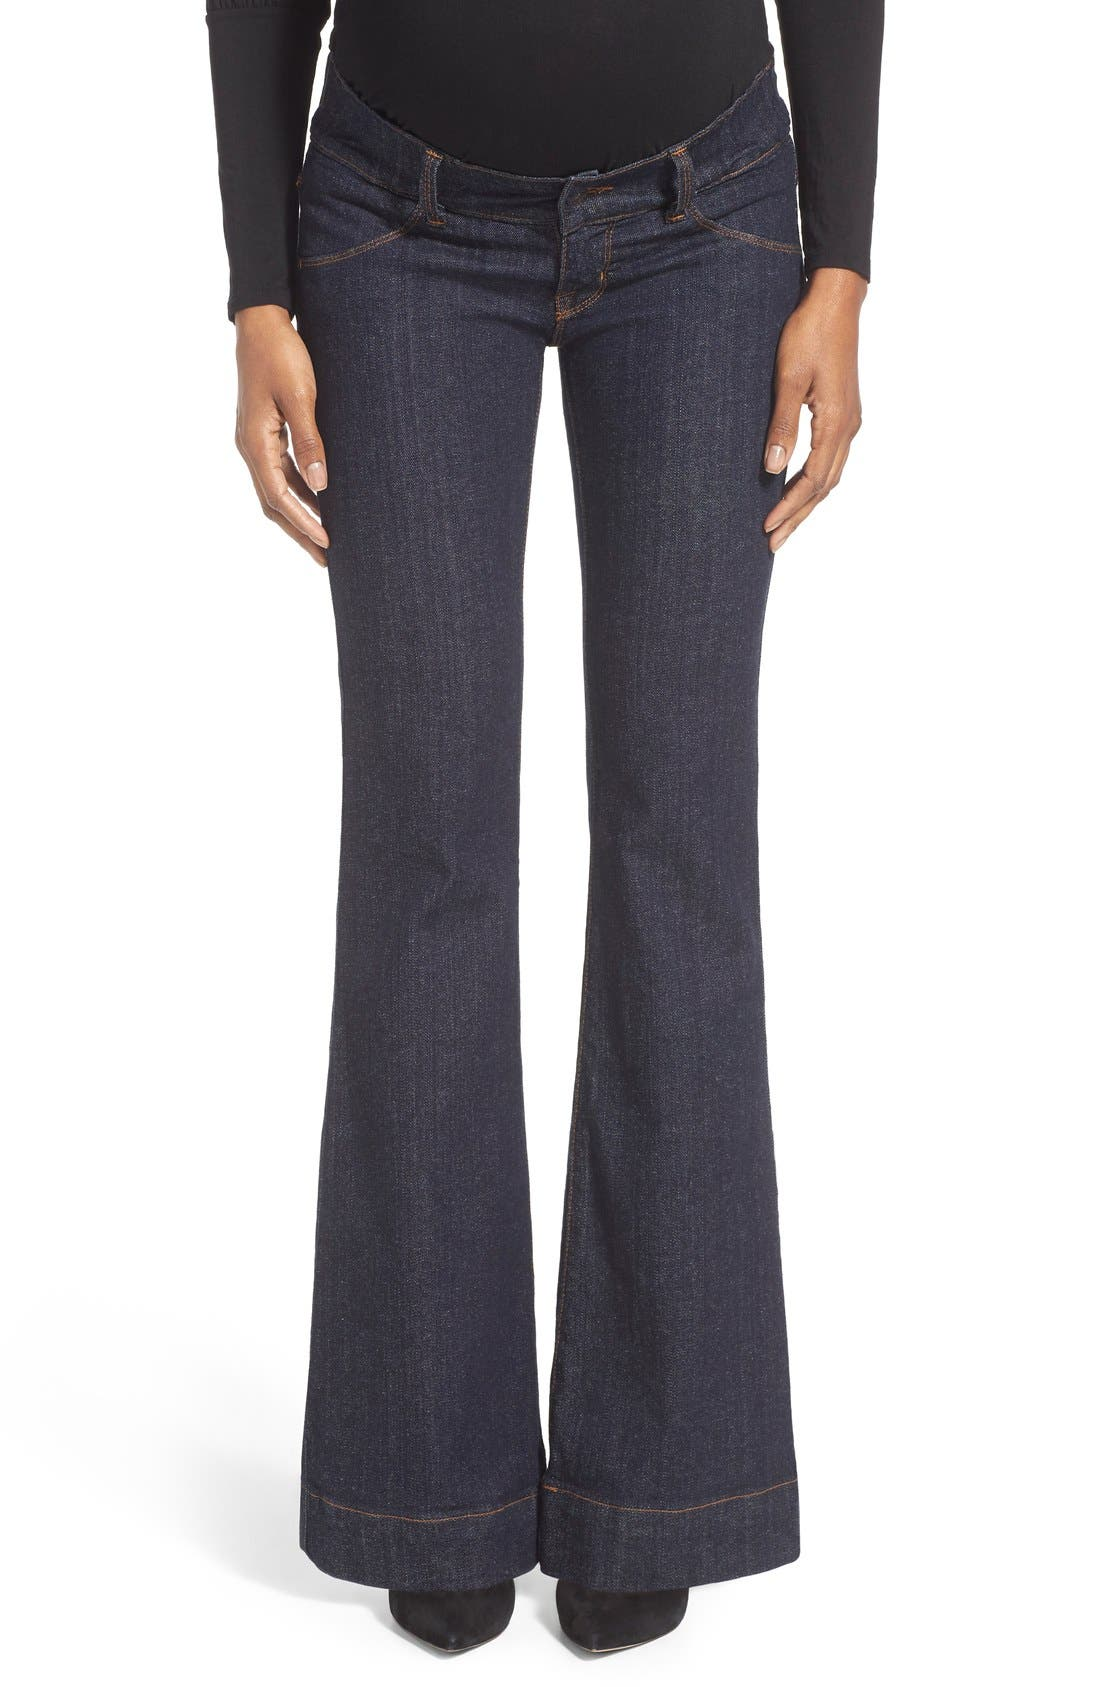 Alternate Image 1 Selected - Maternal America Bootcut Stretch Maternity Jeans